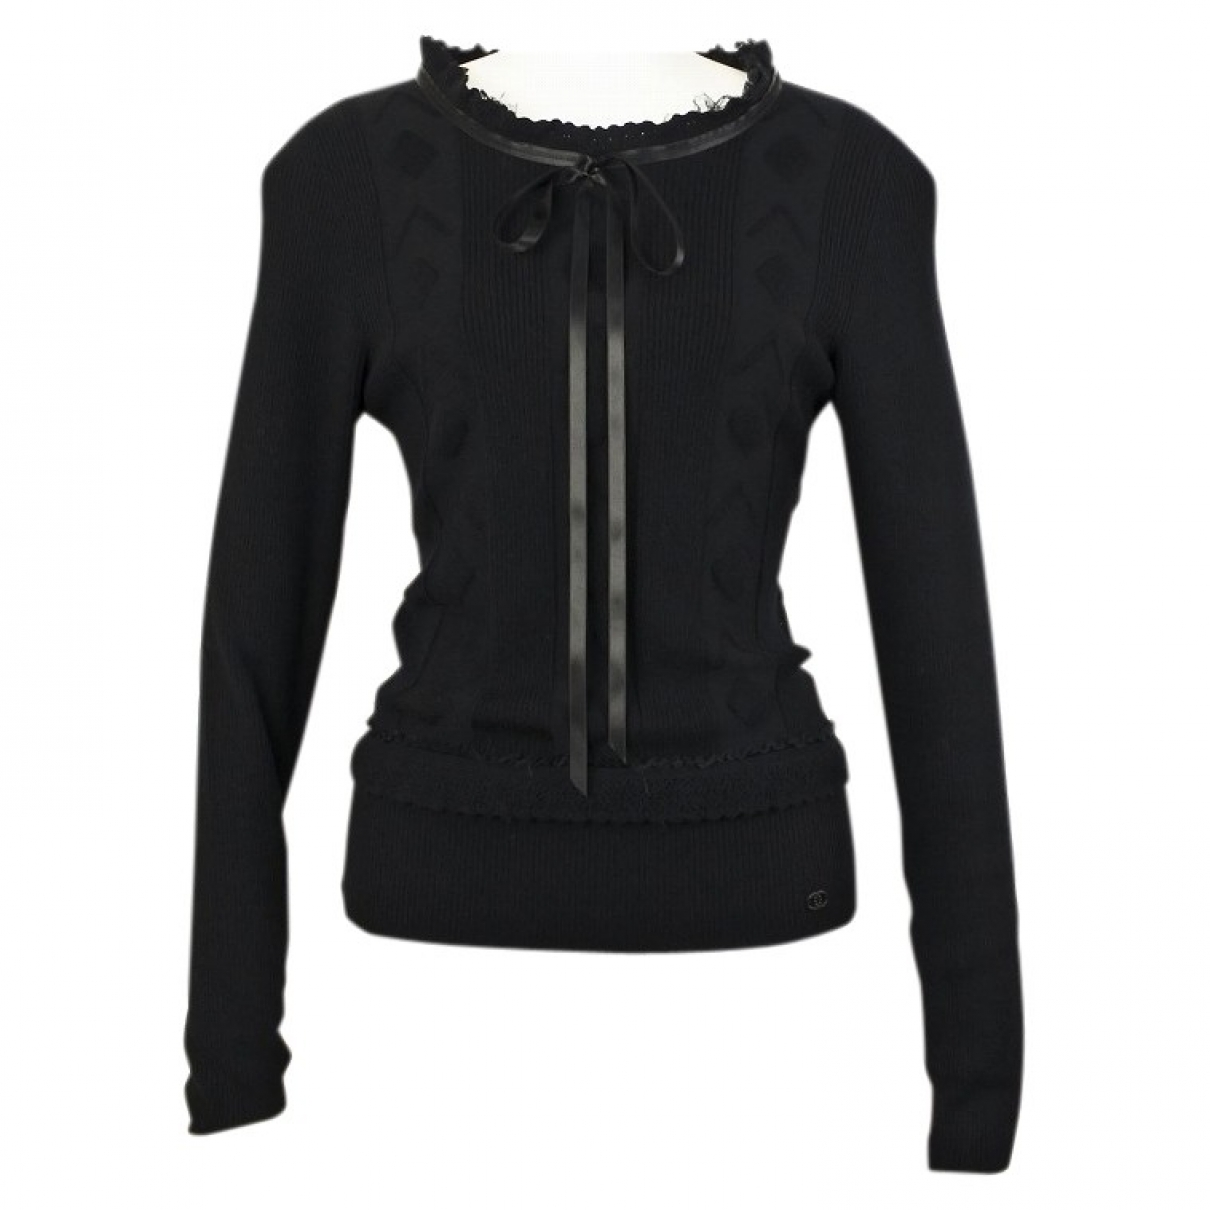 Chanel \N Black Wool  top for Women 42 FR